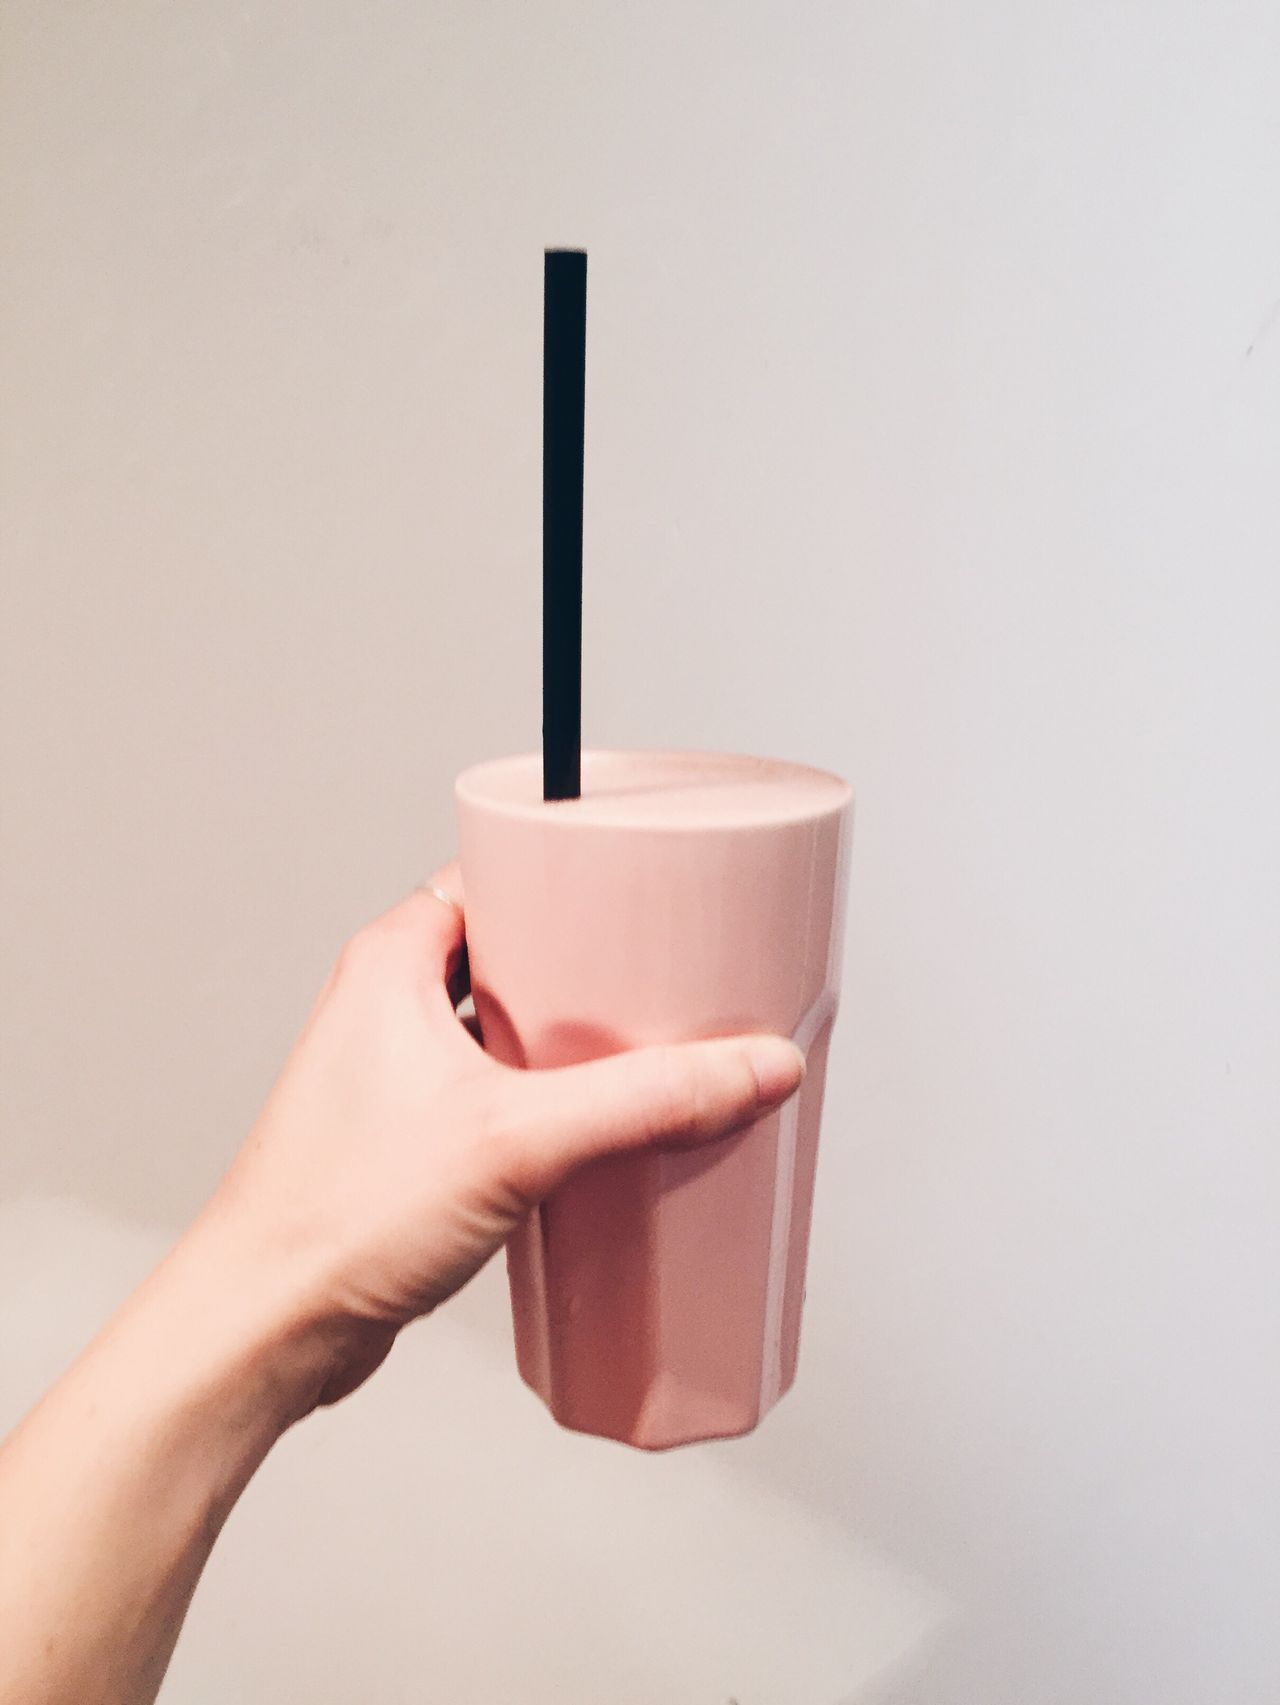 Human Hand Drink Human Body Part Holding One Person Refreshment Food And Drink Drinking Straw Real People Coffee - Drink Disposable Cup Drinking Glass Frothy Drink Freshness Lifestyles Close-up Indoors  Day People Smoothie Milkshake Refreshment